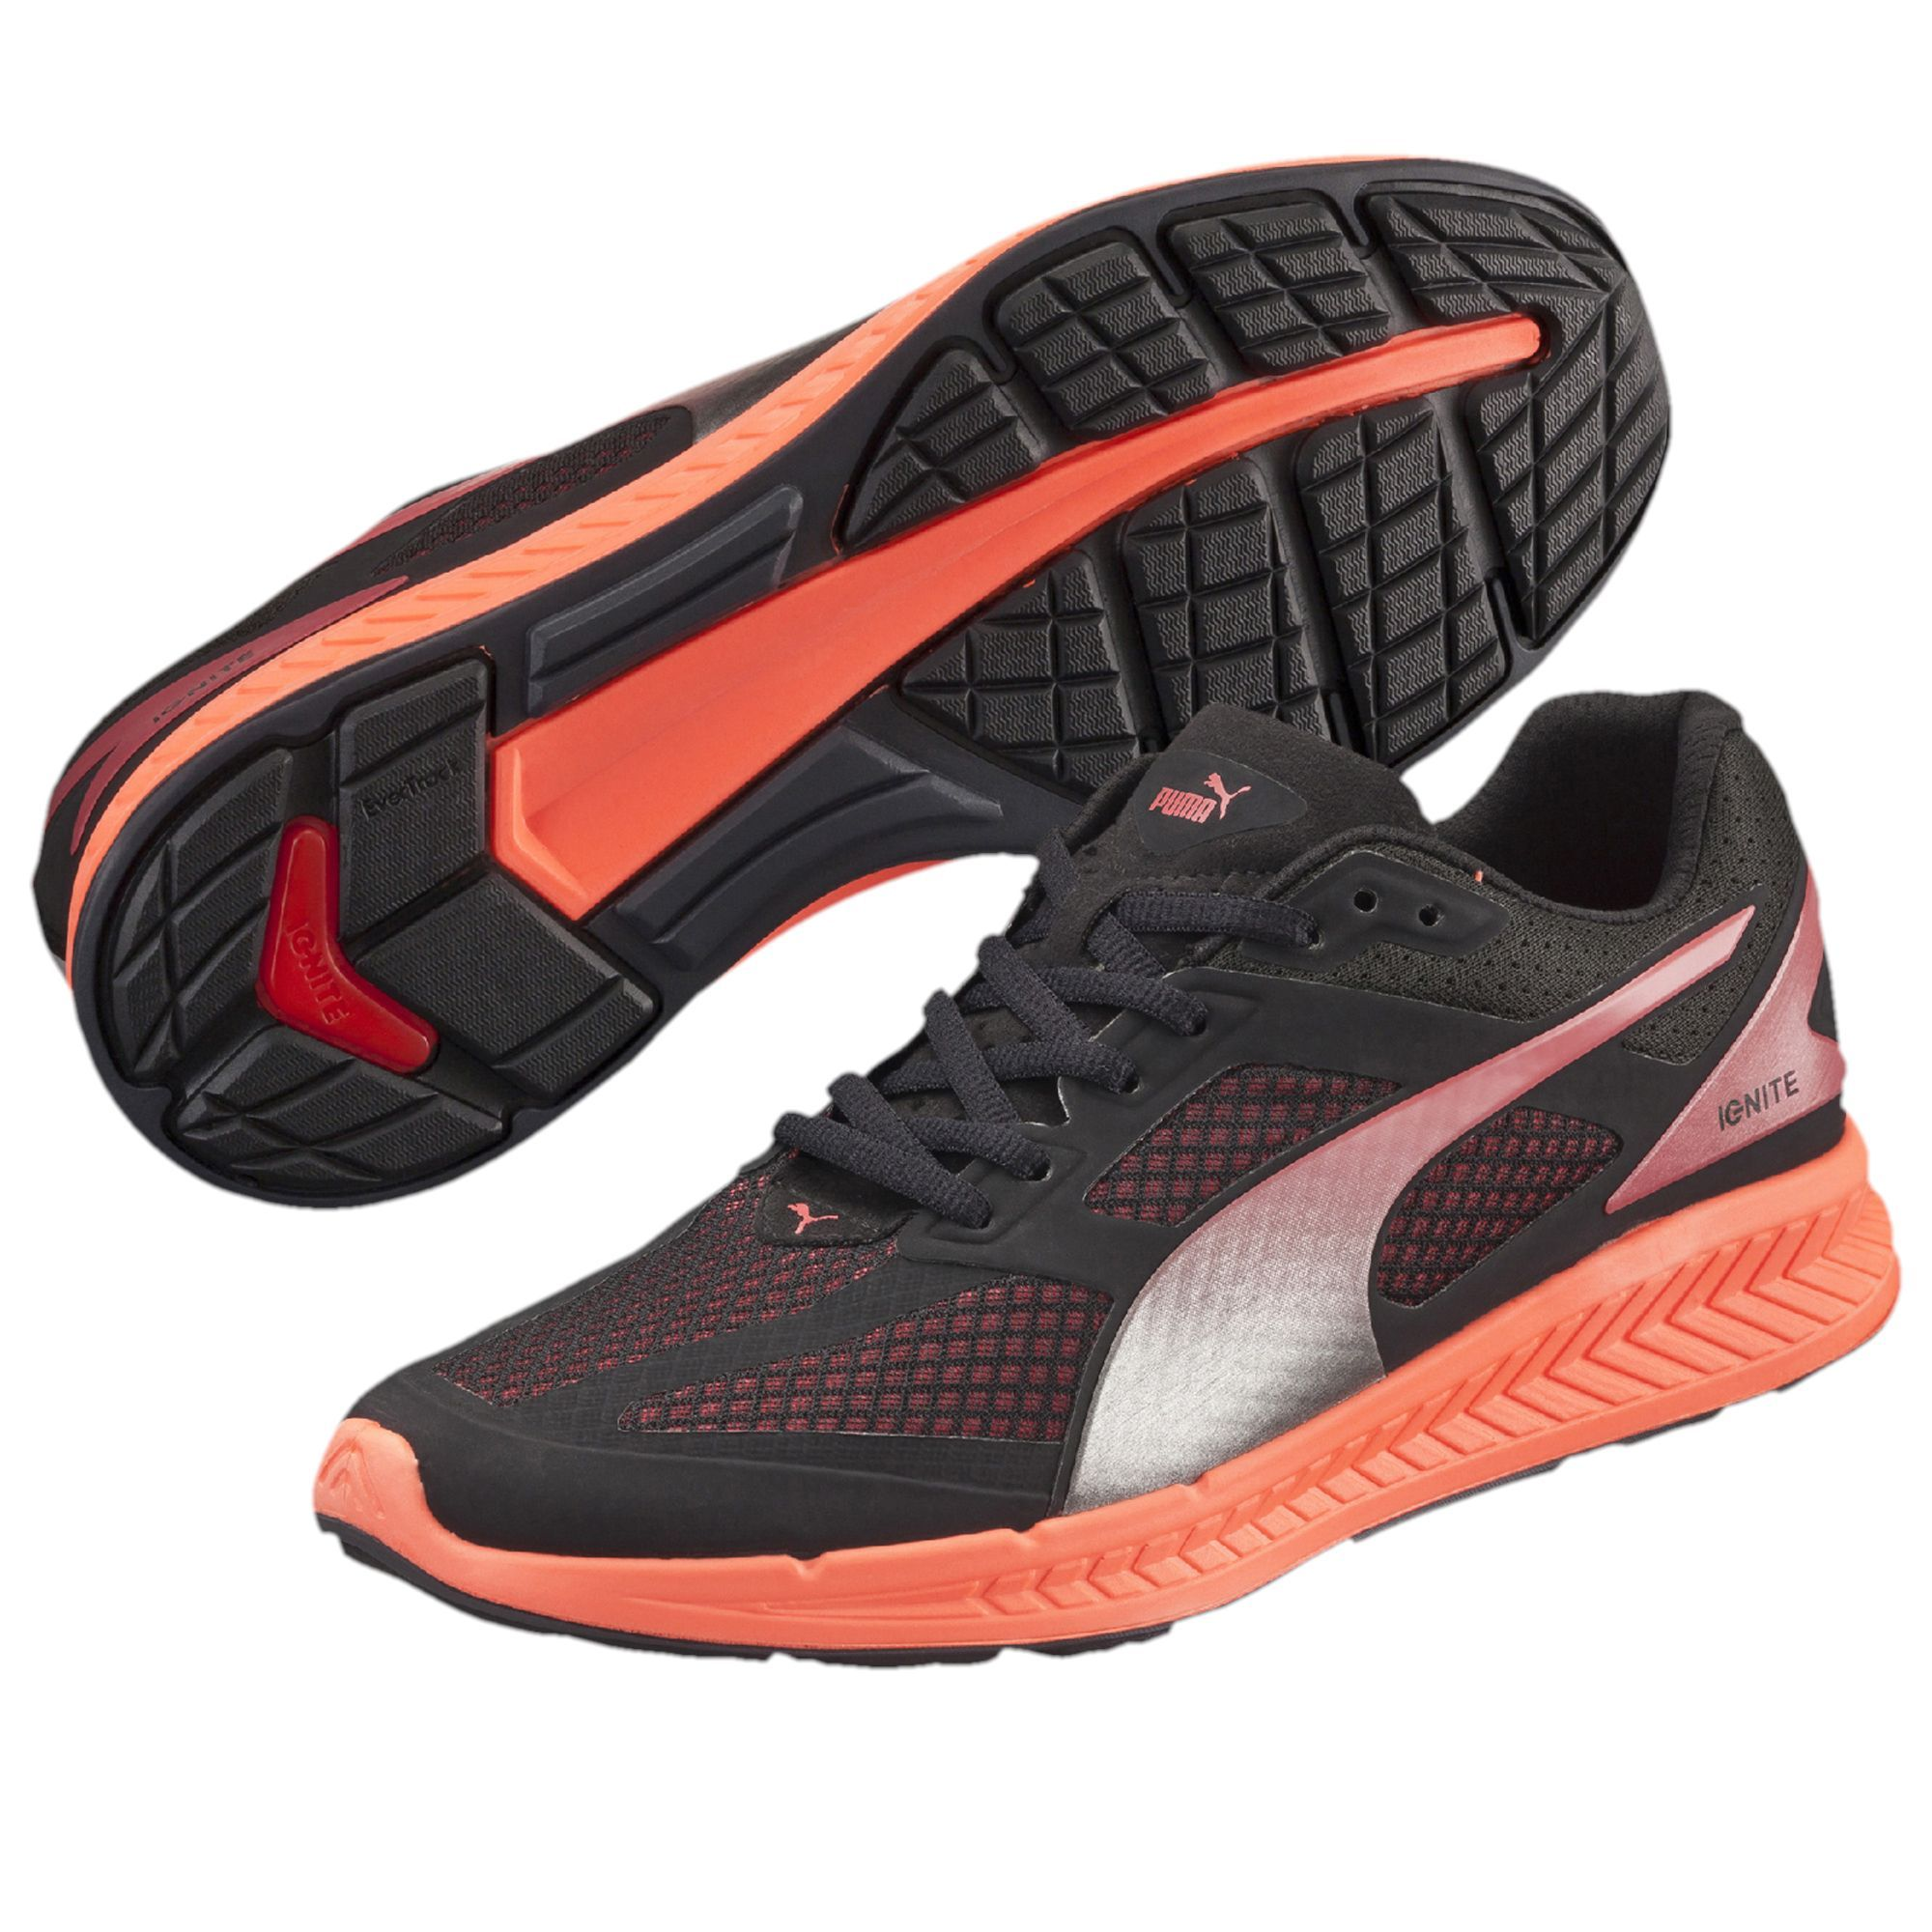 Ladies Sports Shoes With Price